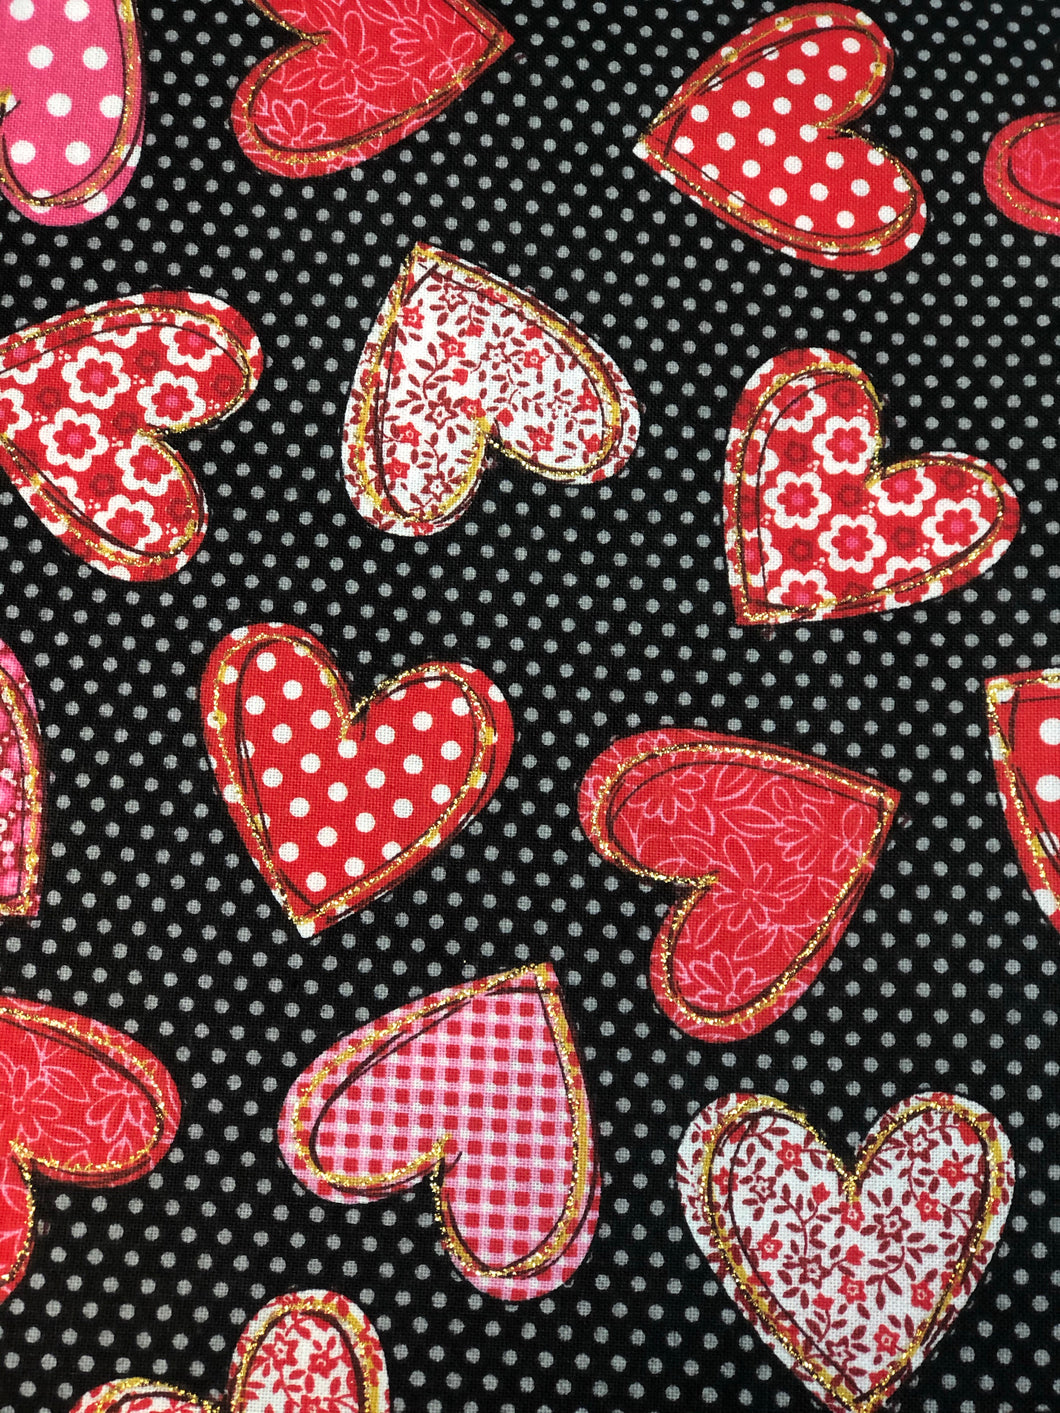 Hearts with polka dots Face Mask | Handmade Cotton shield